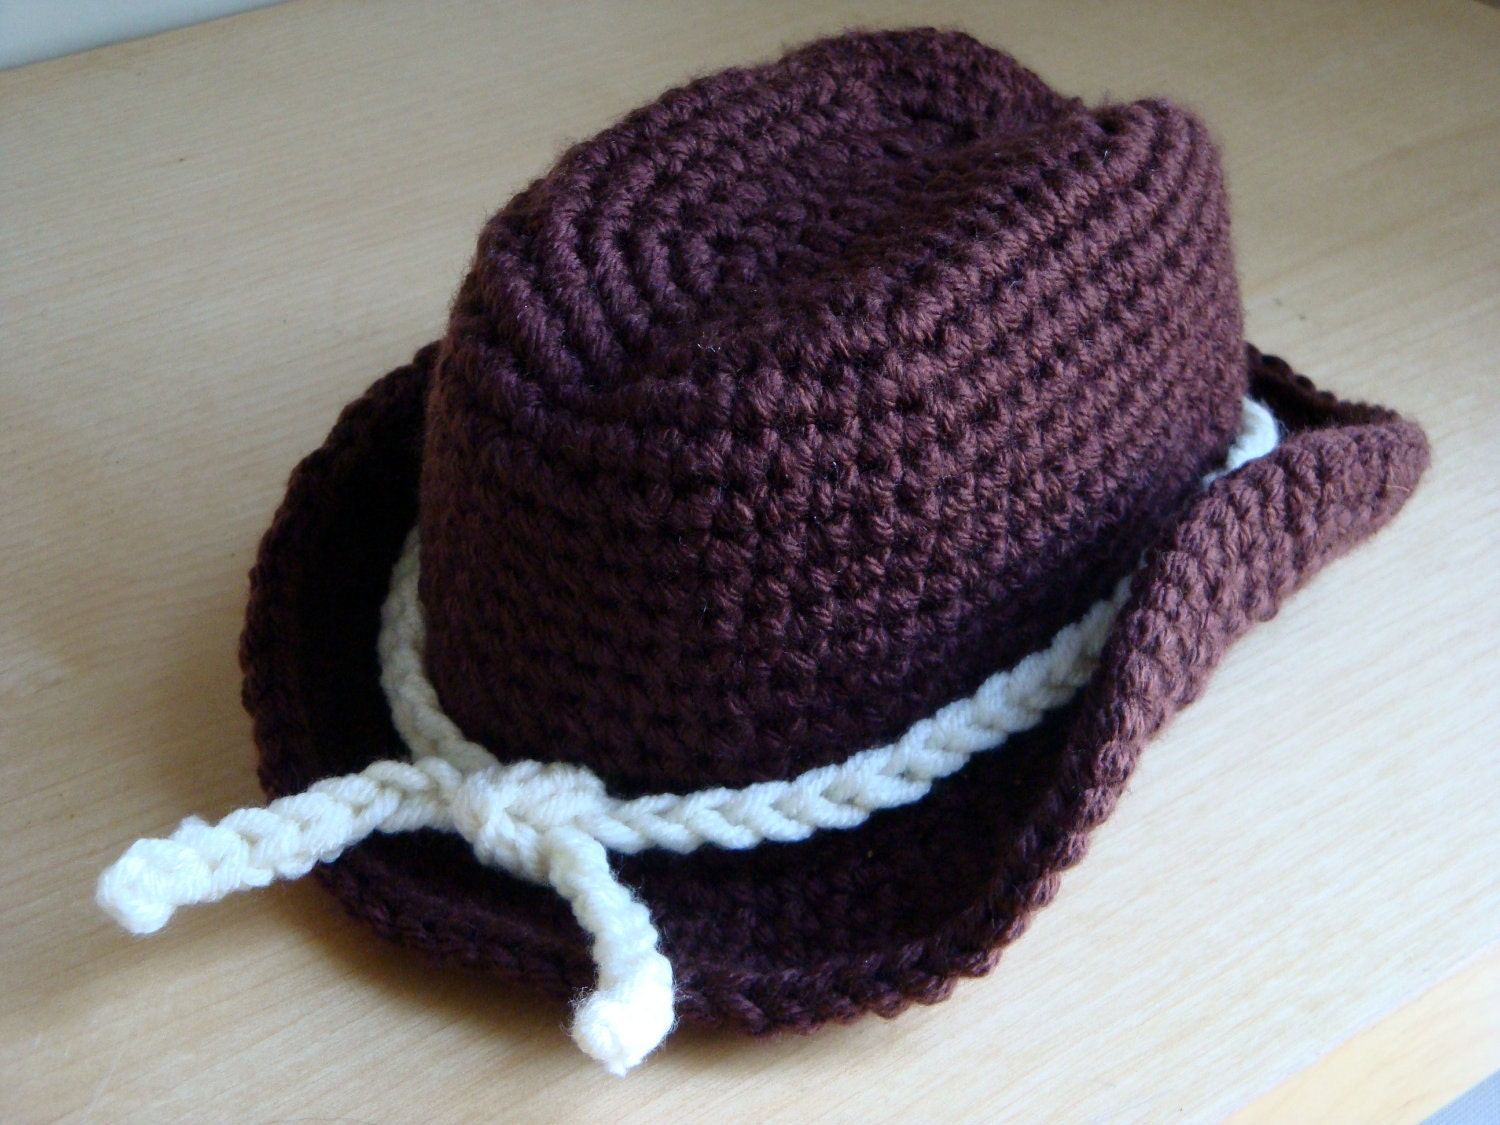 Free Crochet Cowboy Hat Pattern For Adults : related pictures cowboy crochet hat pattern crochet free ...